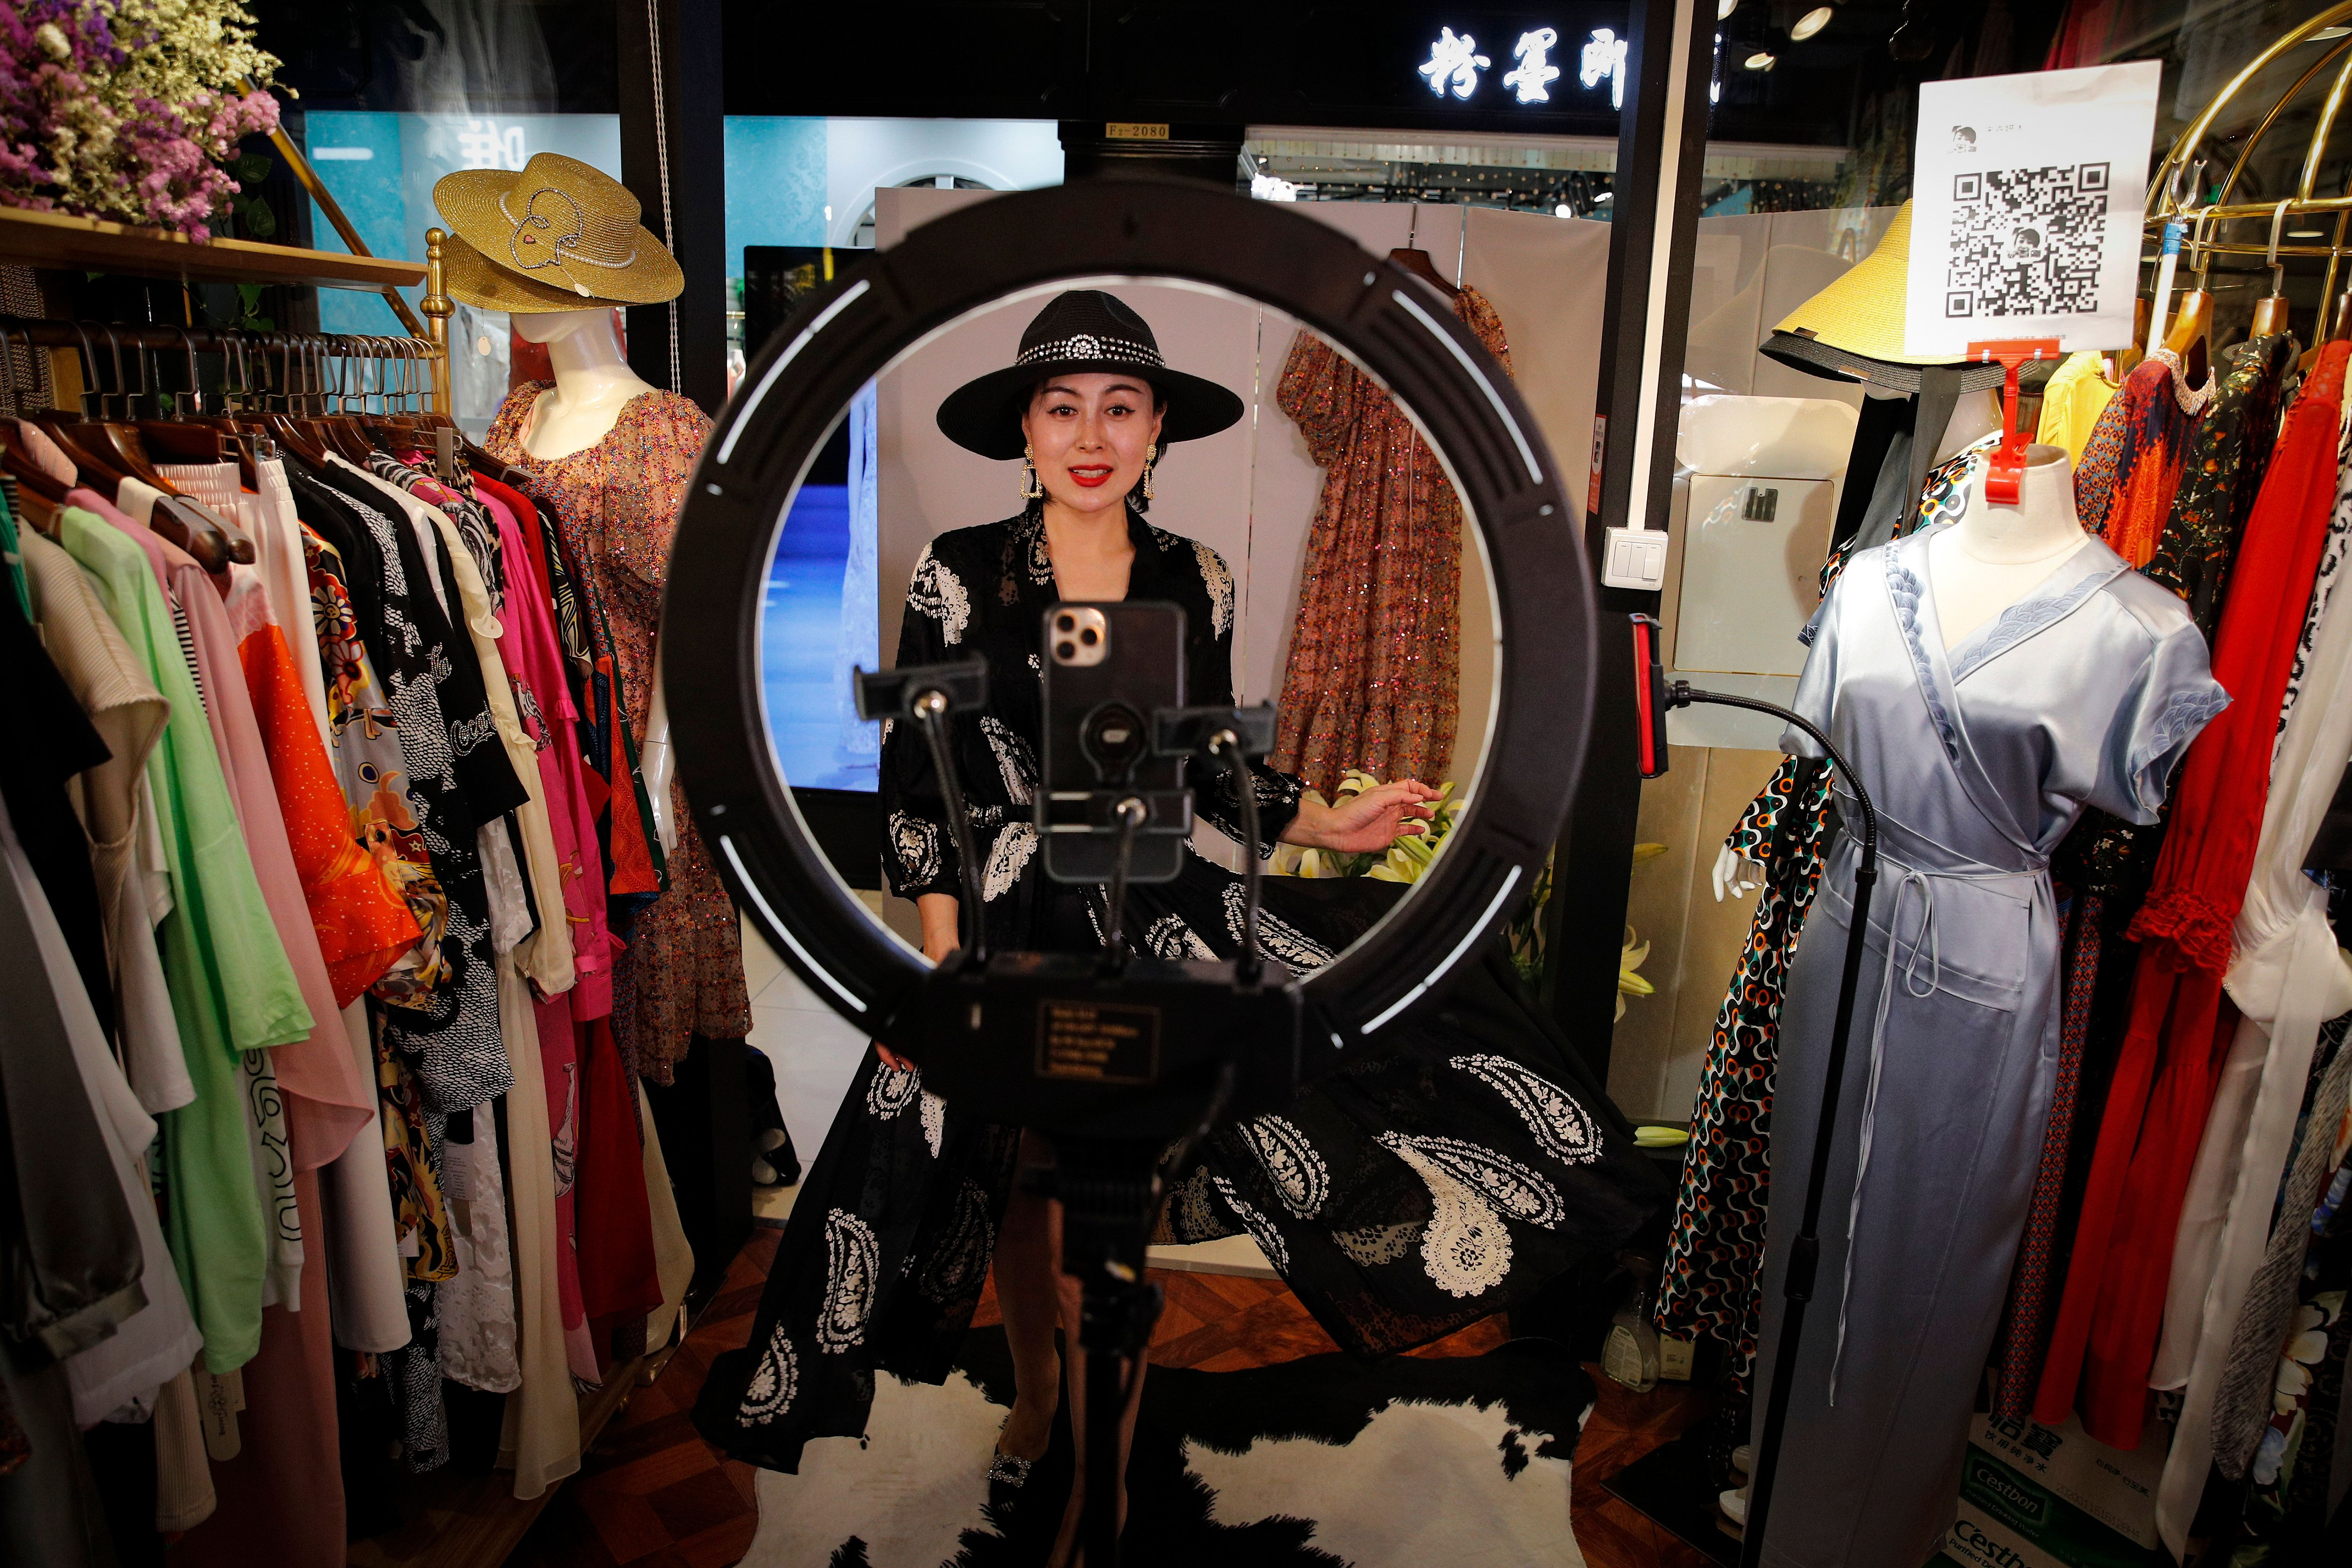 A shop owner showed her fashion dresses for her online clients during the live-streaming.